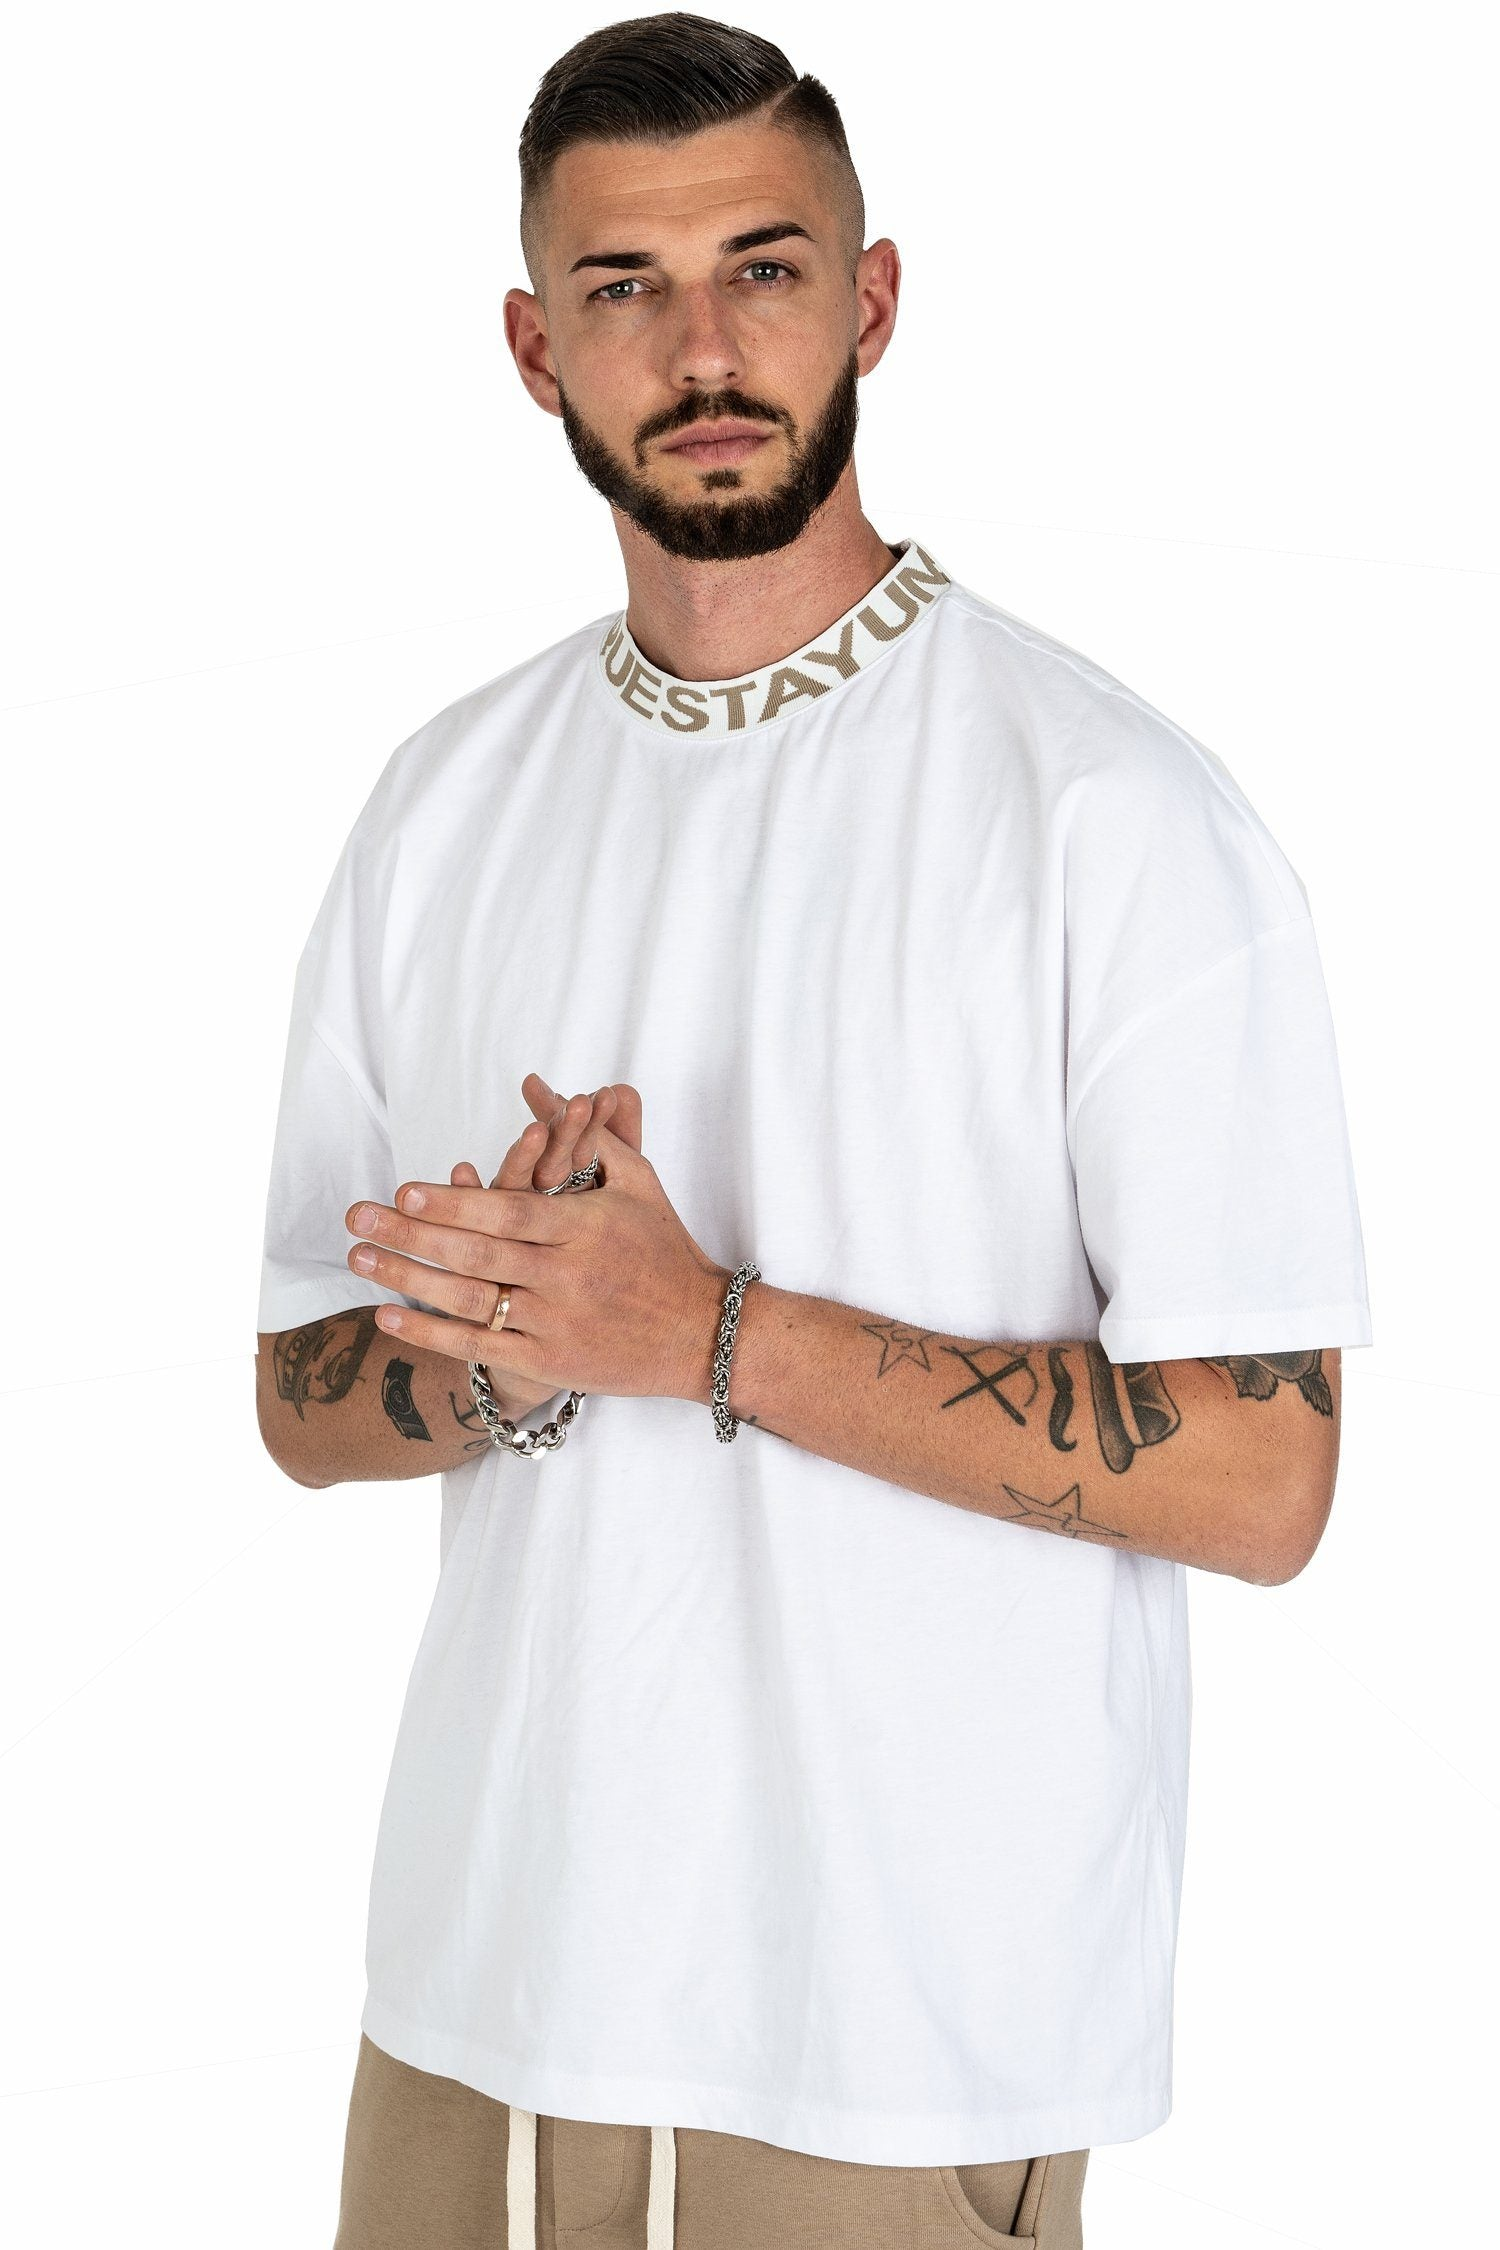 Fio Oversized Tee White - PEGADOR - Dominate the Hype